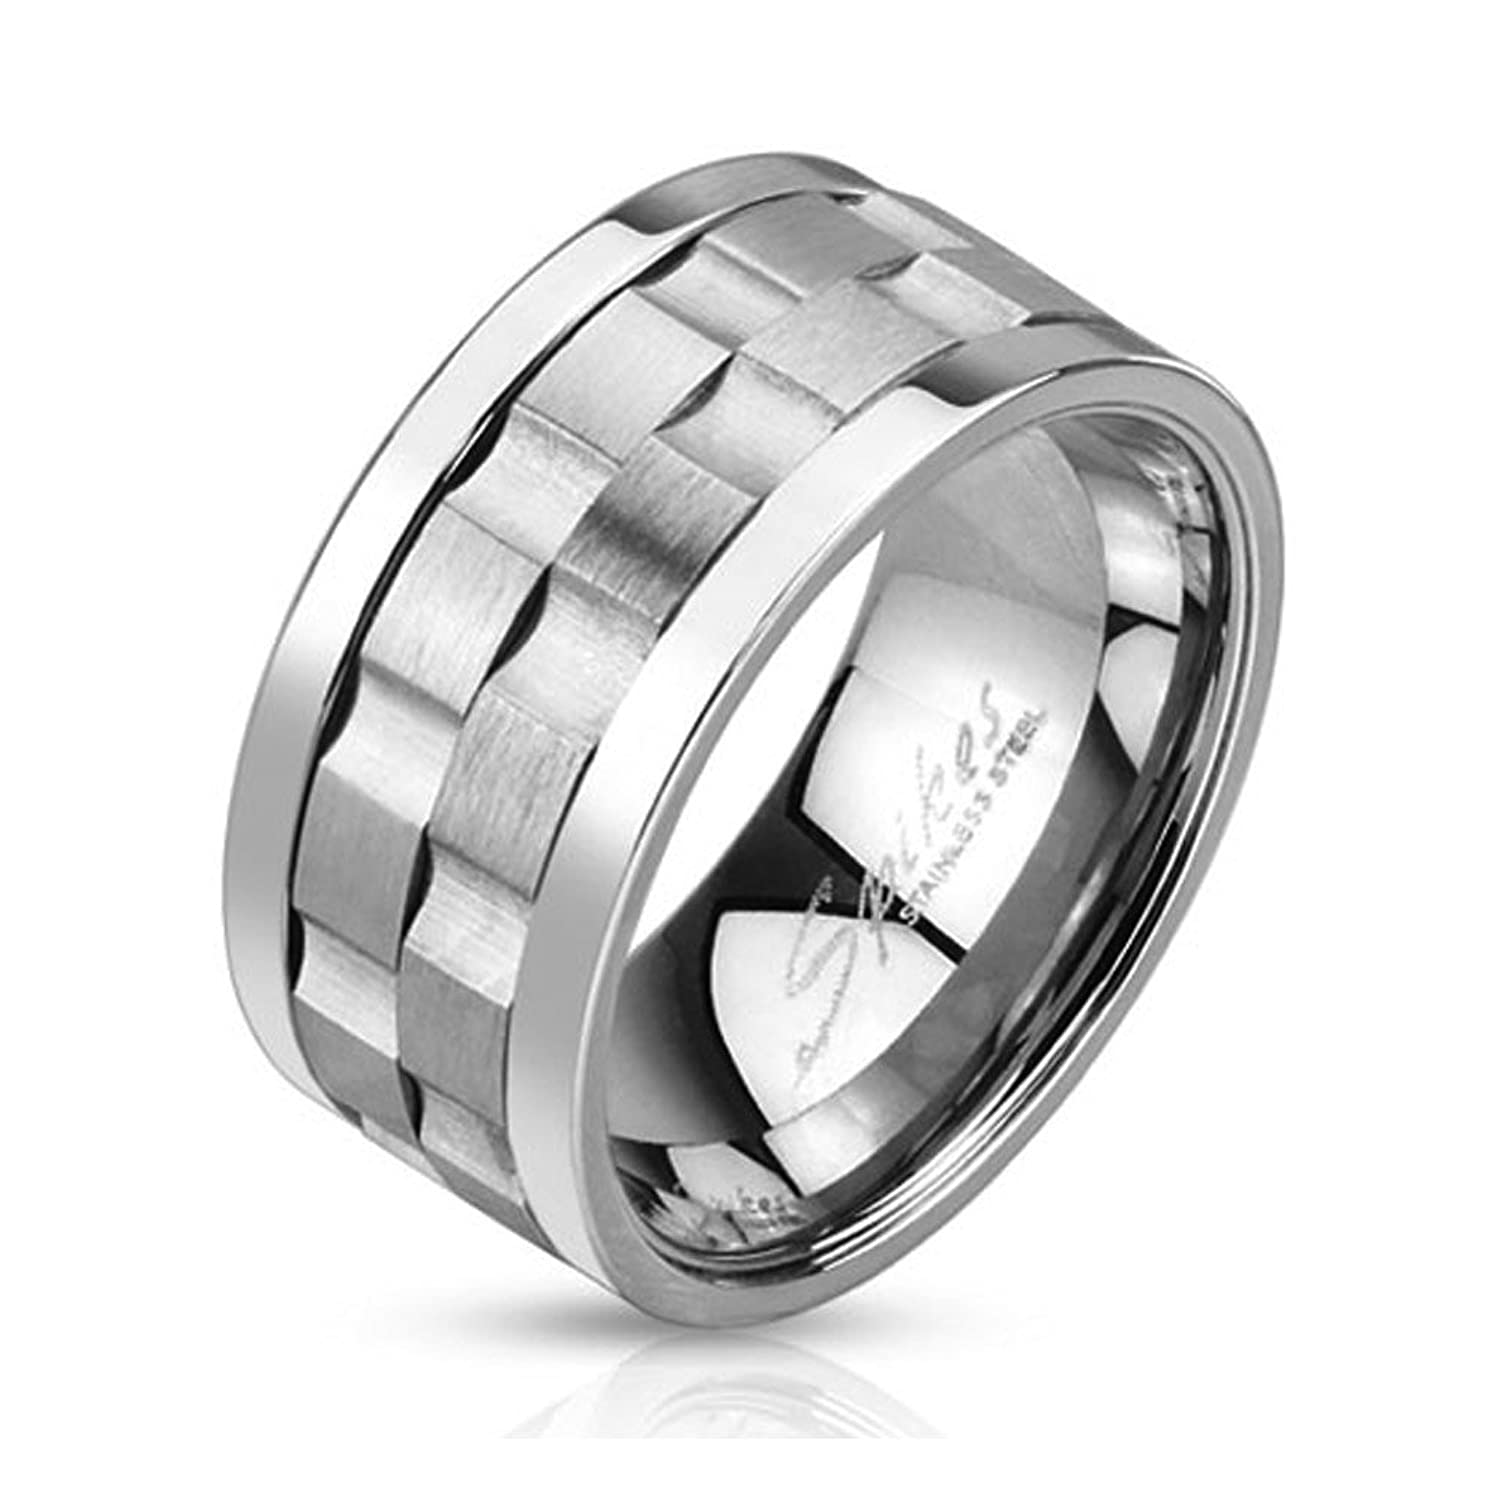 stainless steel double gear shaped center design spinner ring ring width of 10mm - Gear Wedding Ring